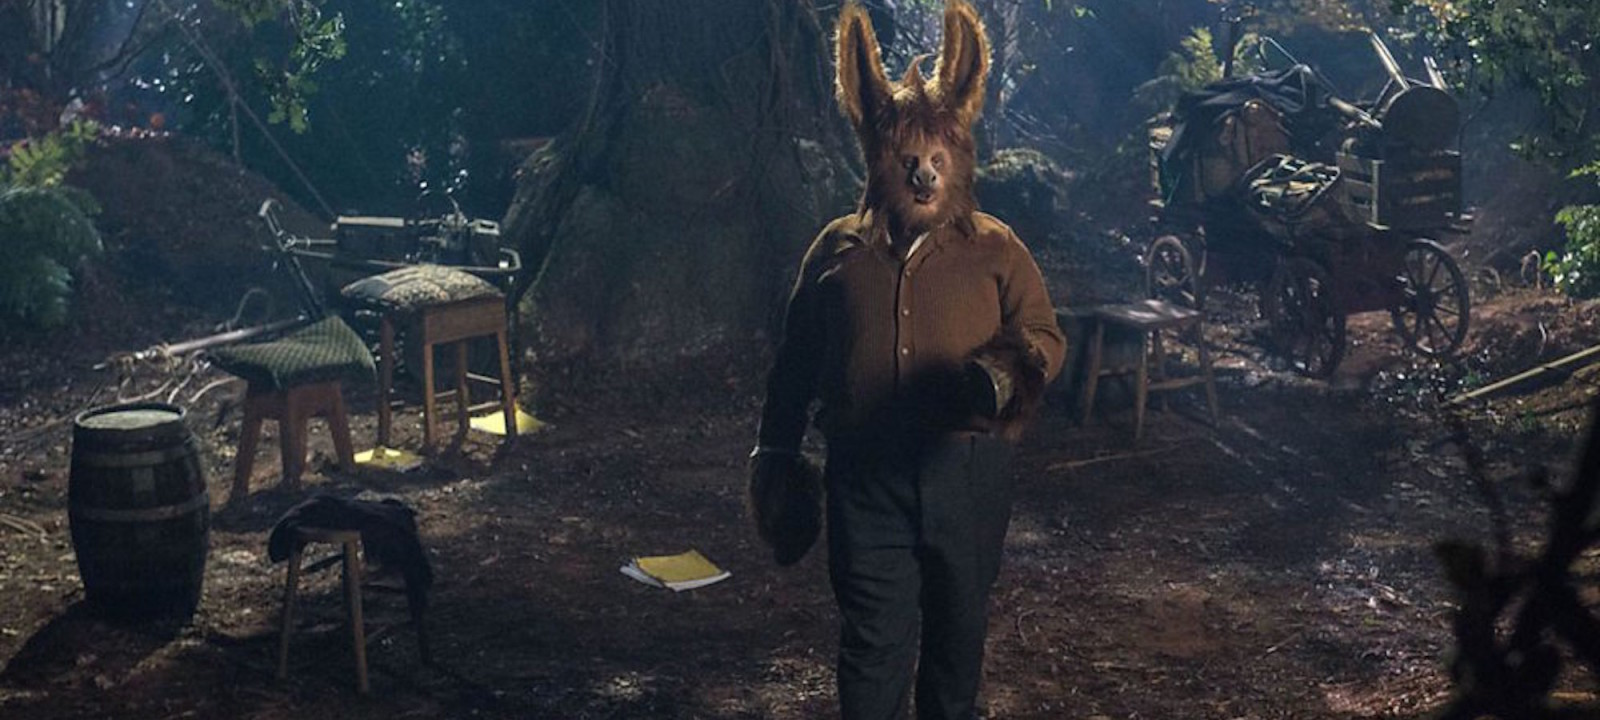 Matt Lucas plays Bottom in Russell T. Davies' TV adaptation of 'A Midsummer Night's Dream'